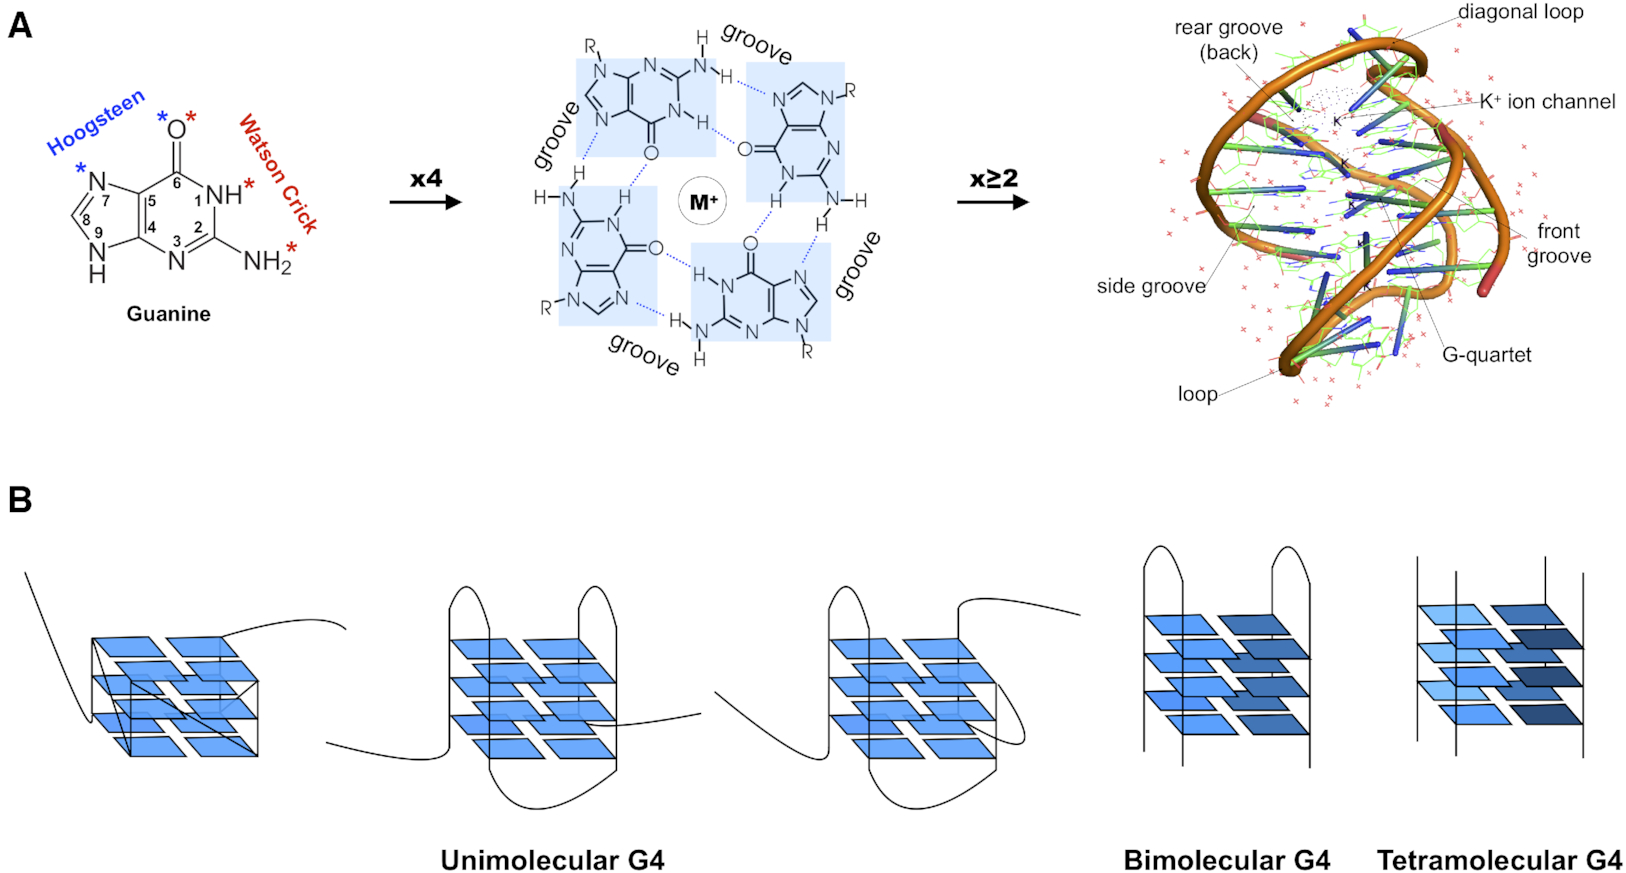 Figure 1. From guanines to G-quadruplexes